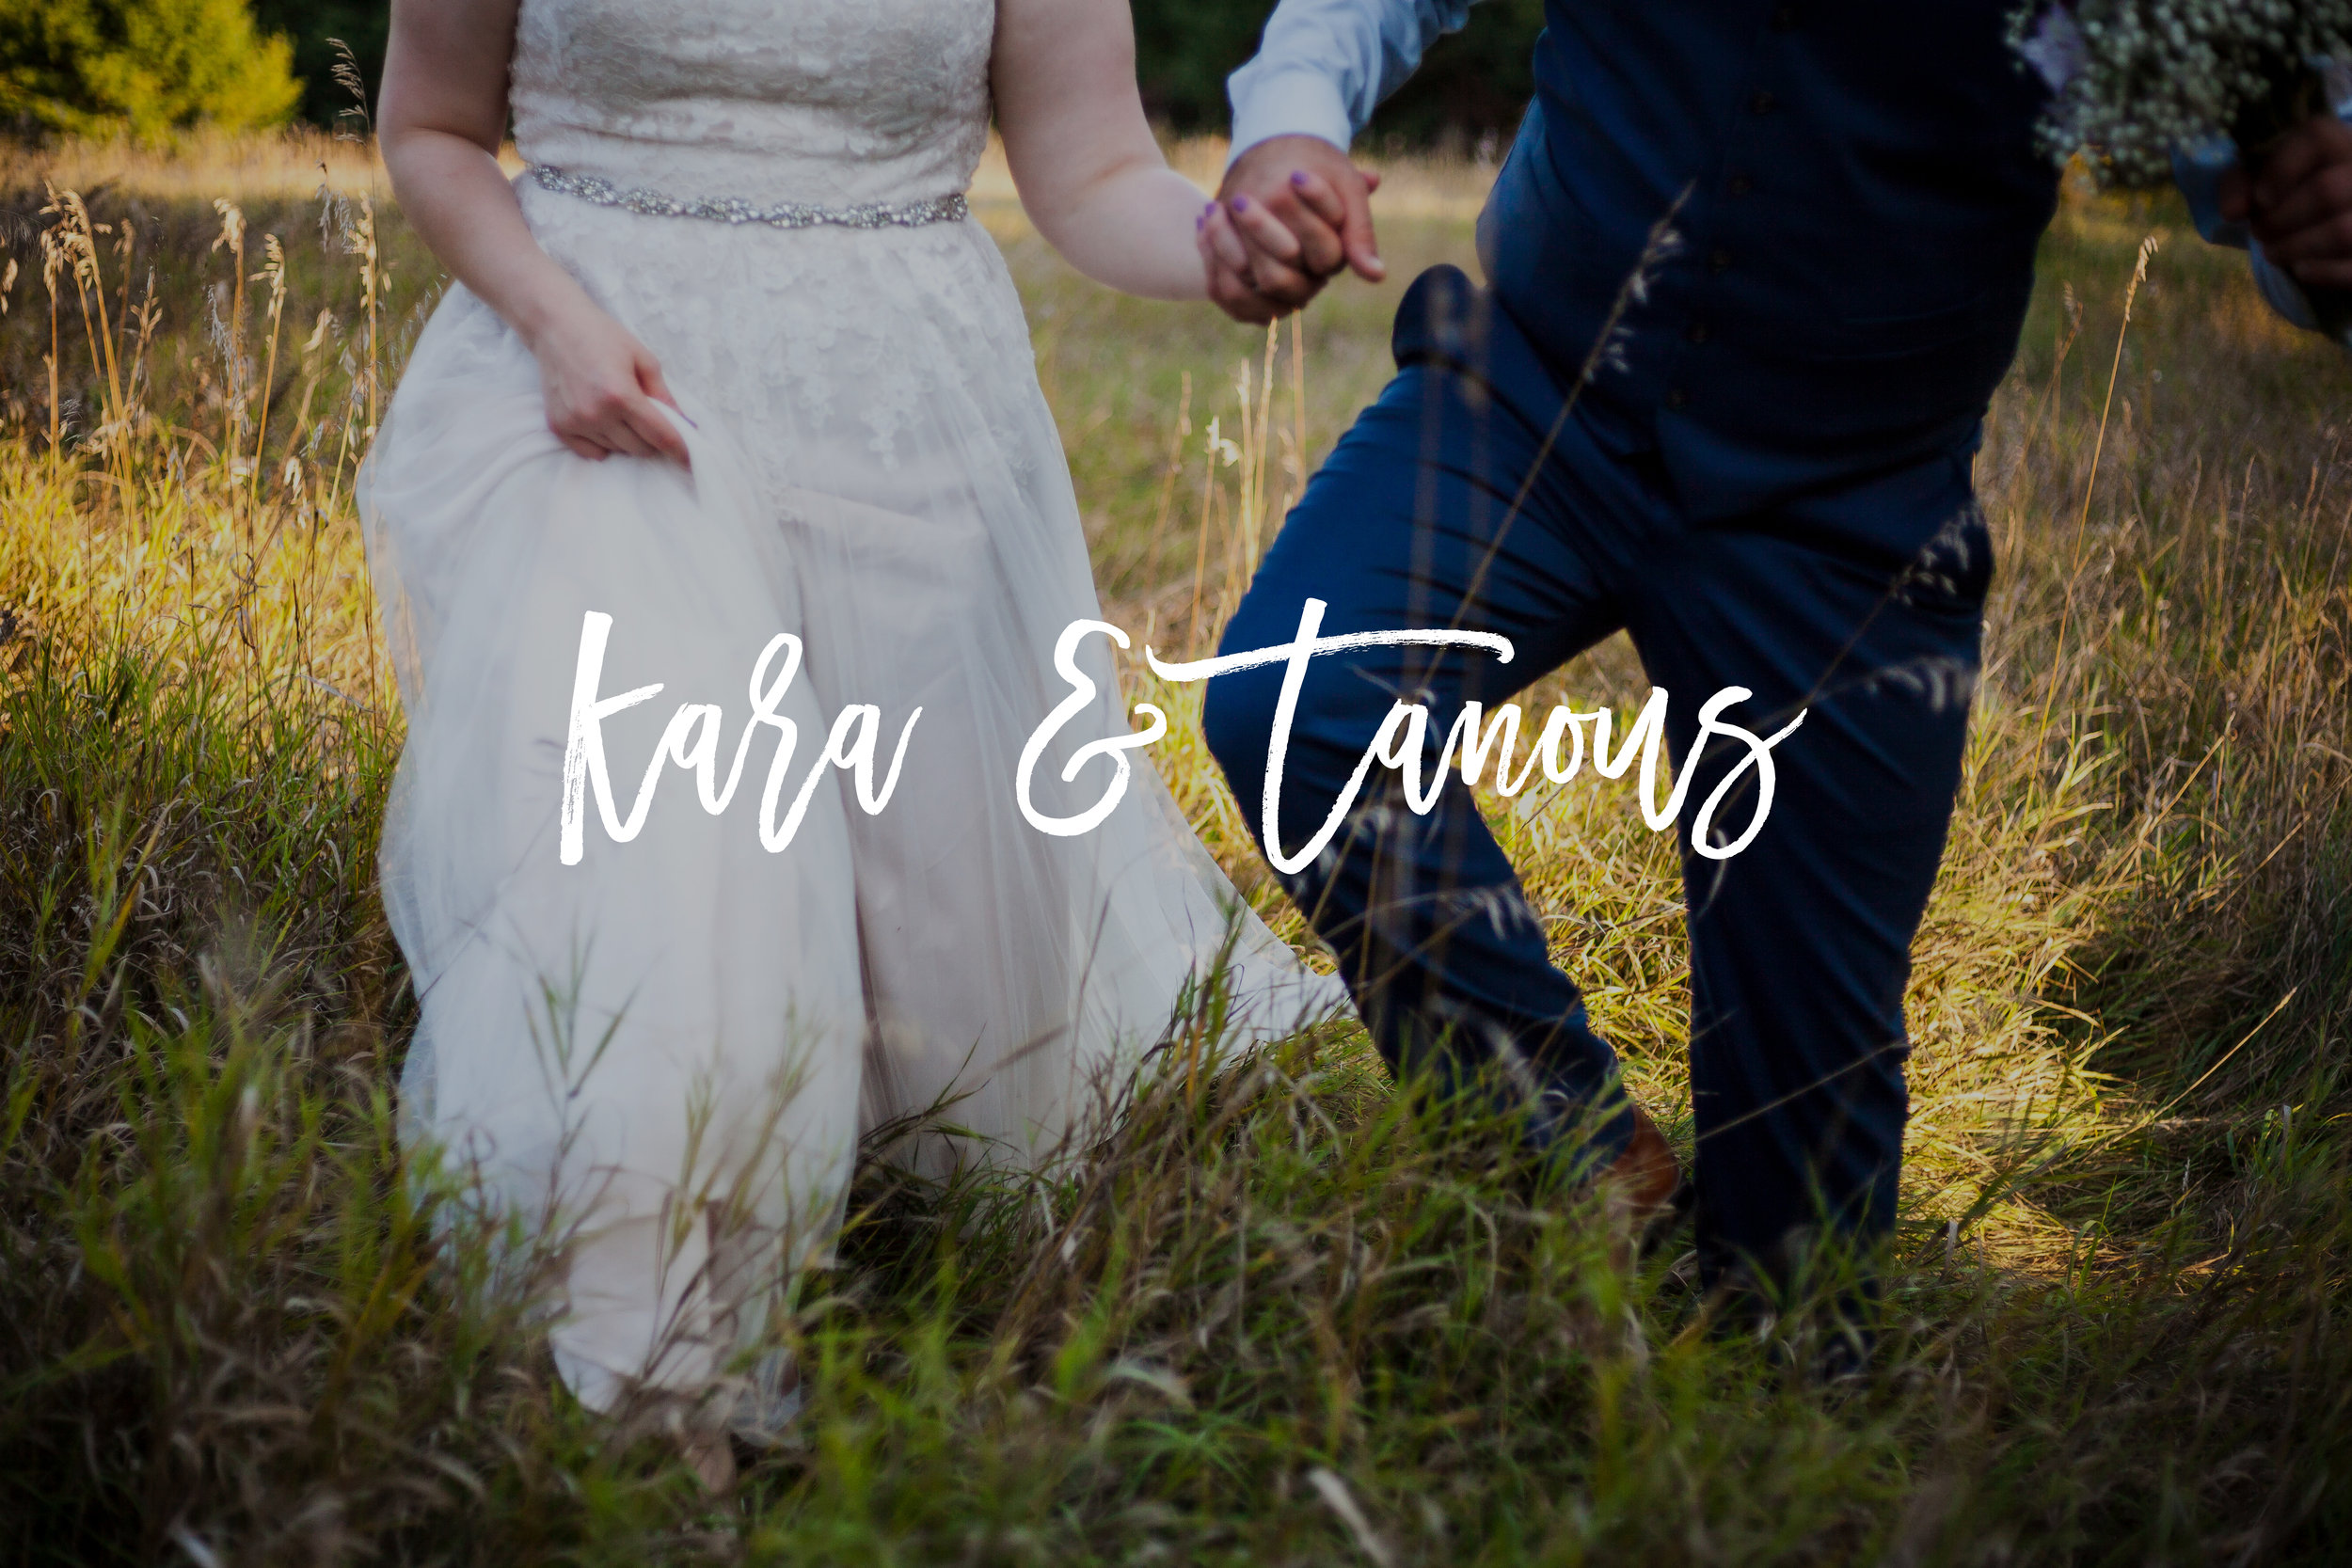 Kara and Tanous Wedding Photos Button.jpg